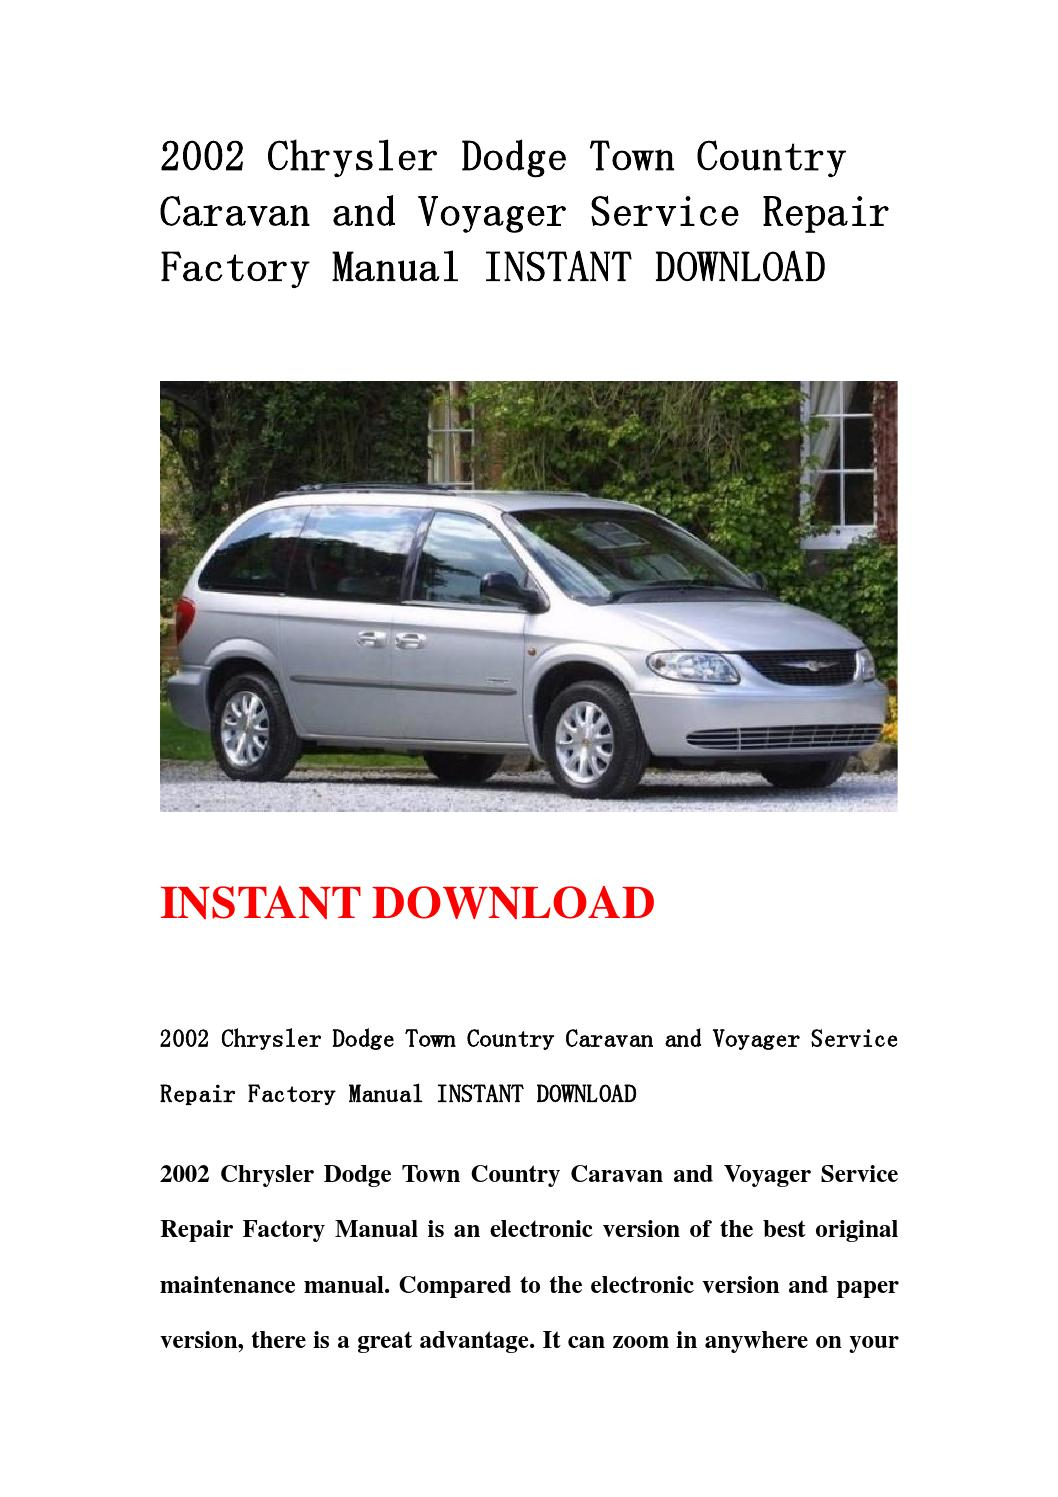 2002 chrysler dodge town country caravan and voyager service repair factory manual instant. Black Bedroom Furniture Sets. Home Design Ideas